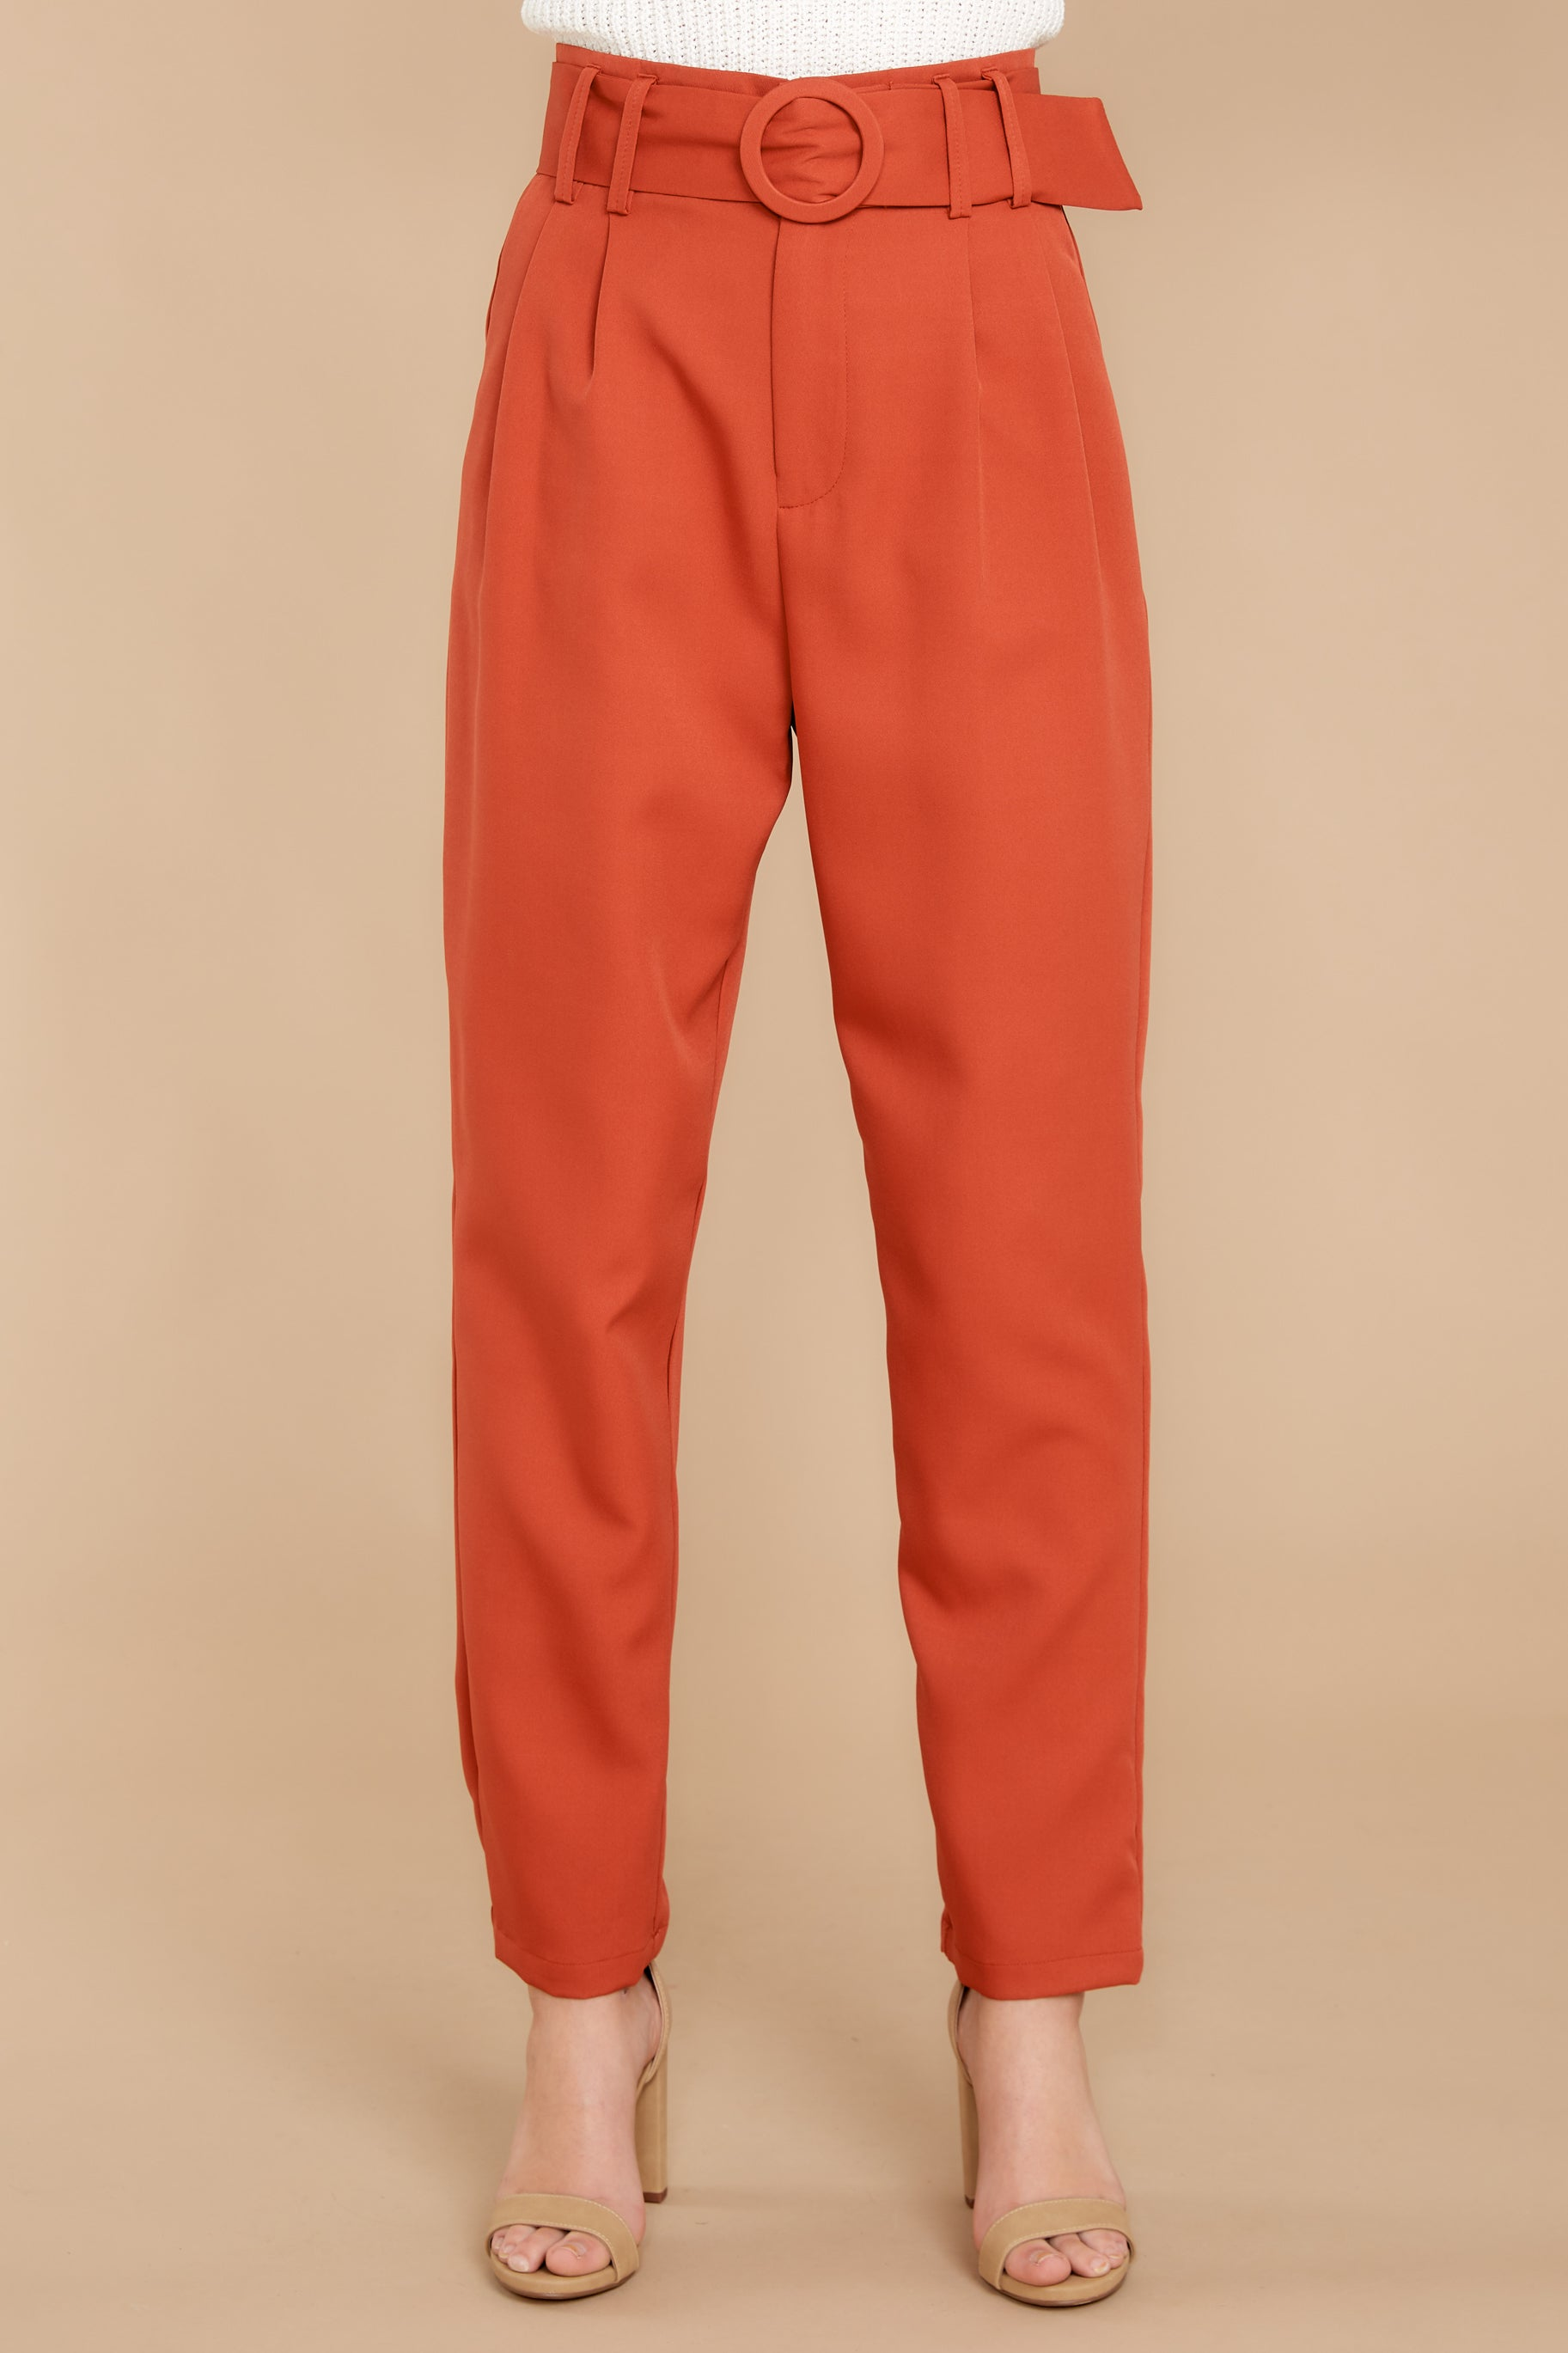 2 Into The Office Coral Orange Pants at reddressboutique.com